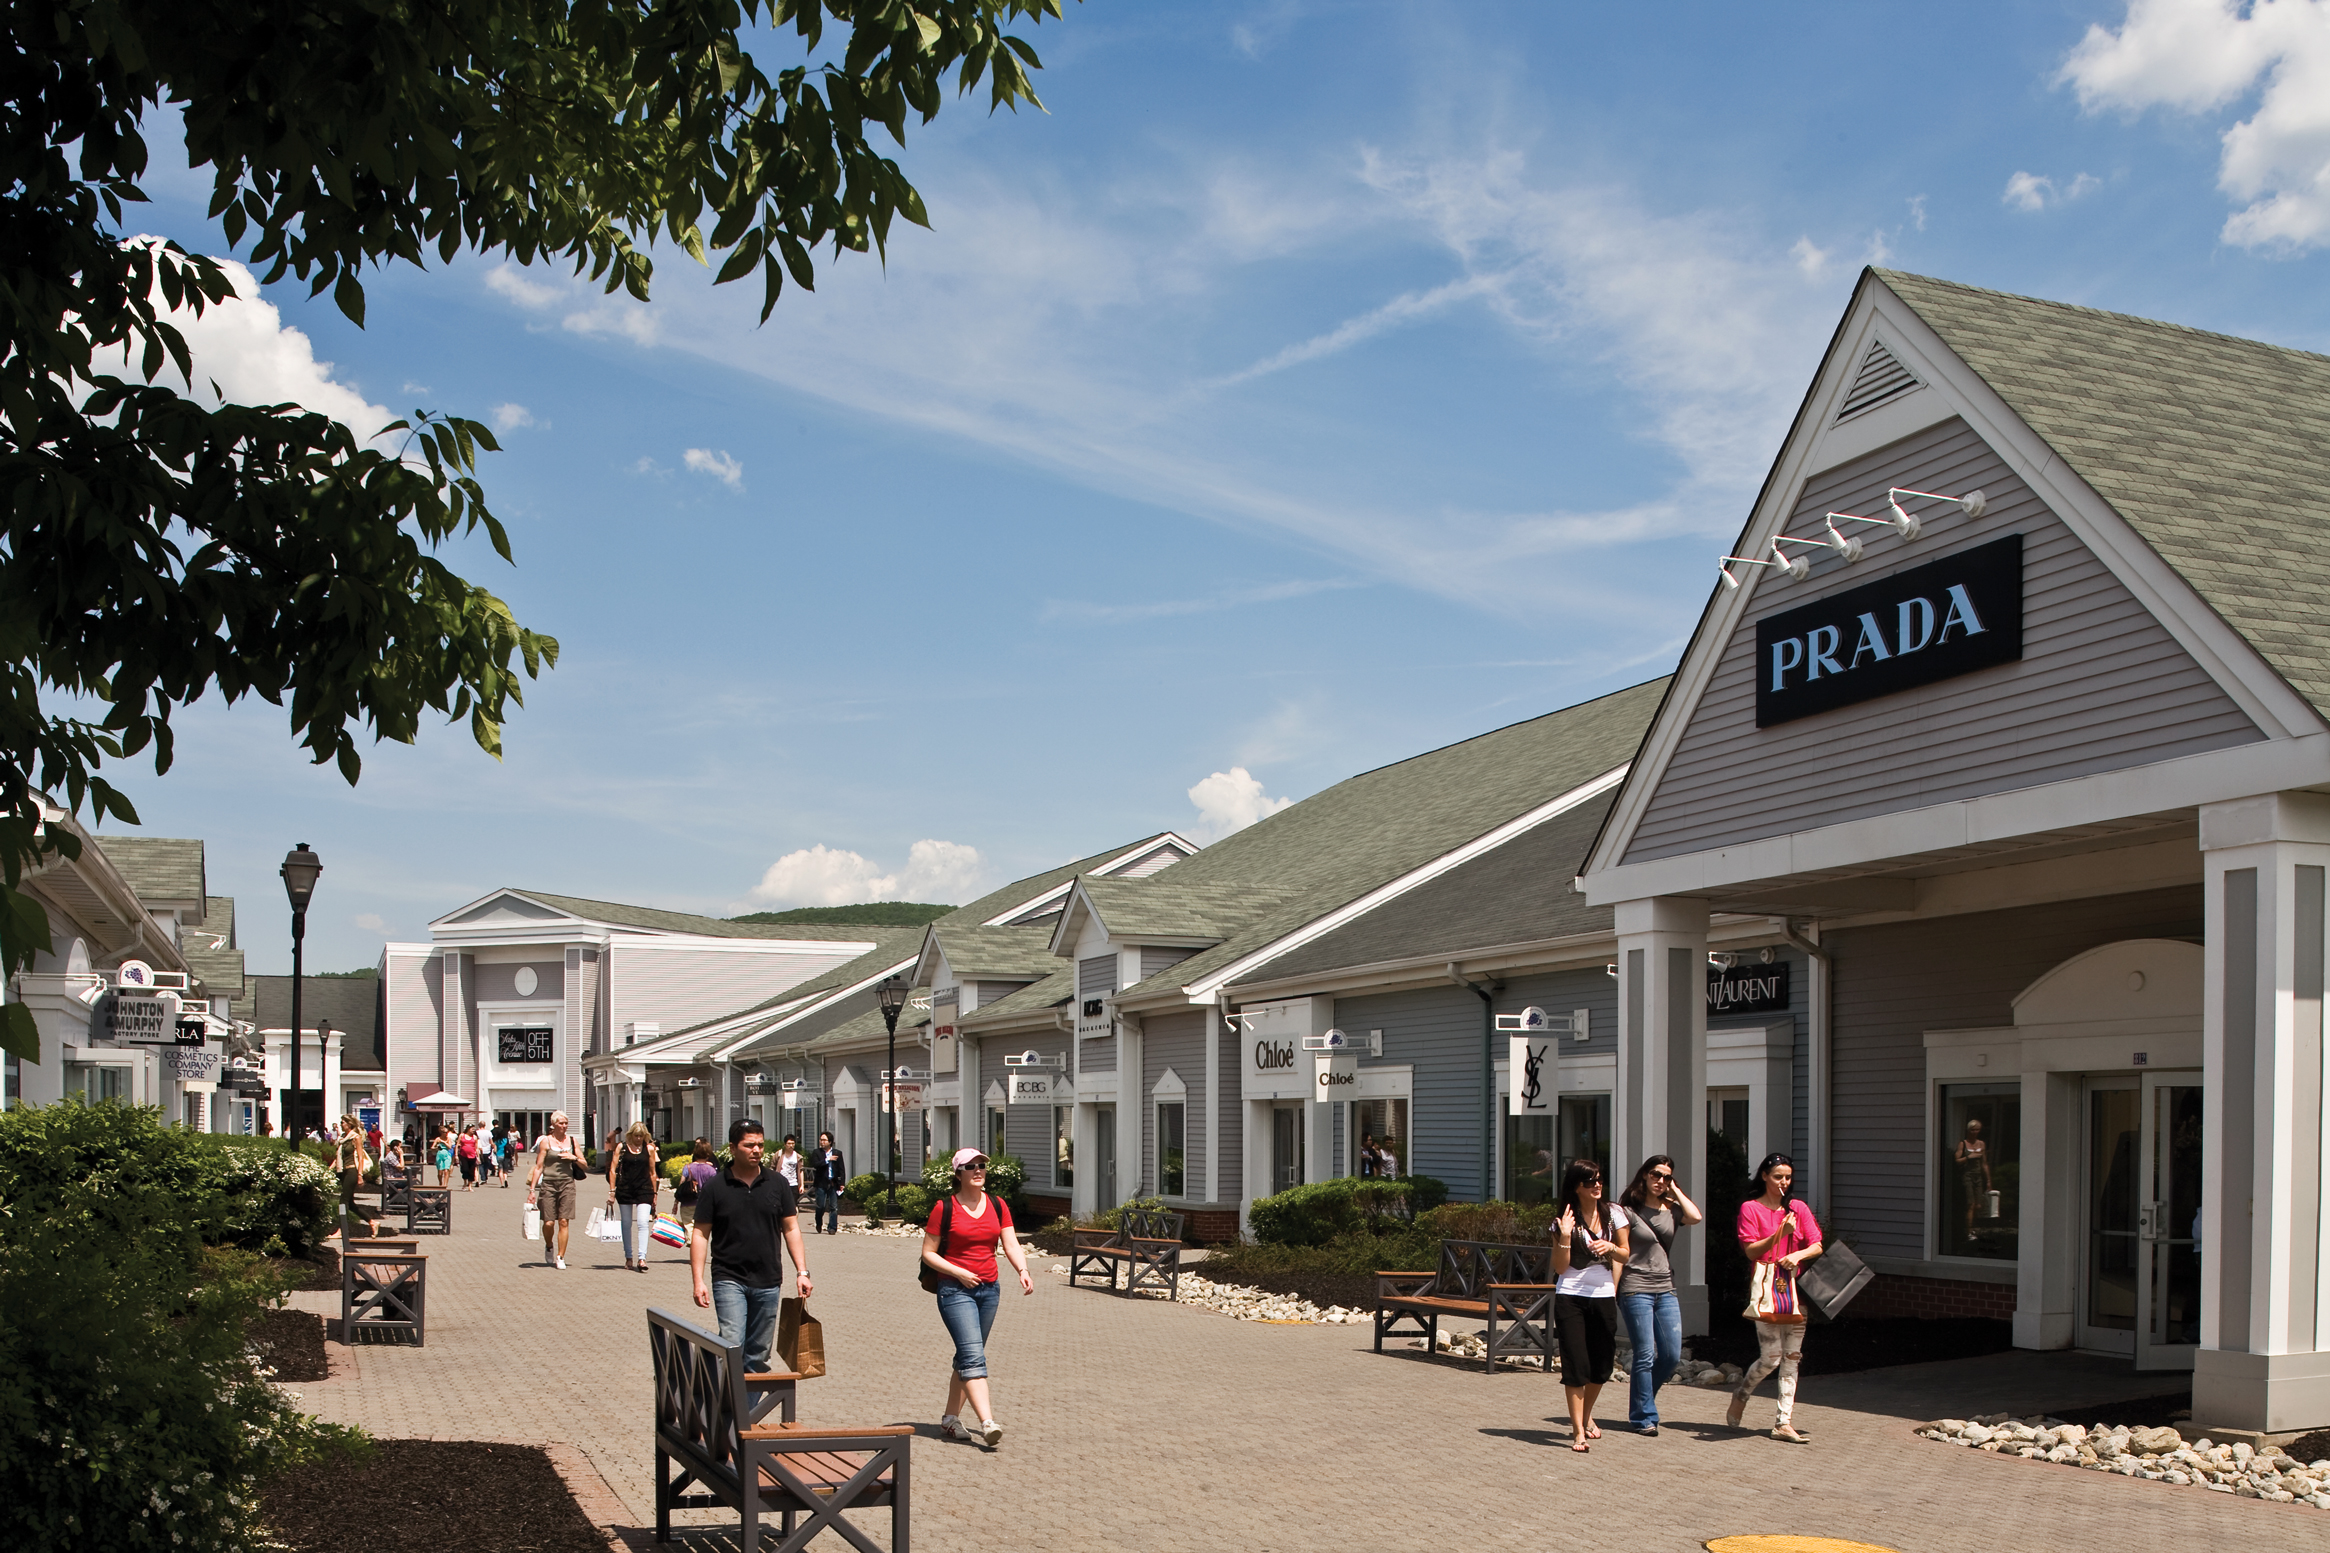 New York Malls and Outlets Whether you're looking for bargains on big-name brands or an all-day shopping-entertainment experience, New York's malls and outlets .